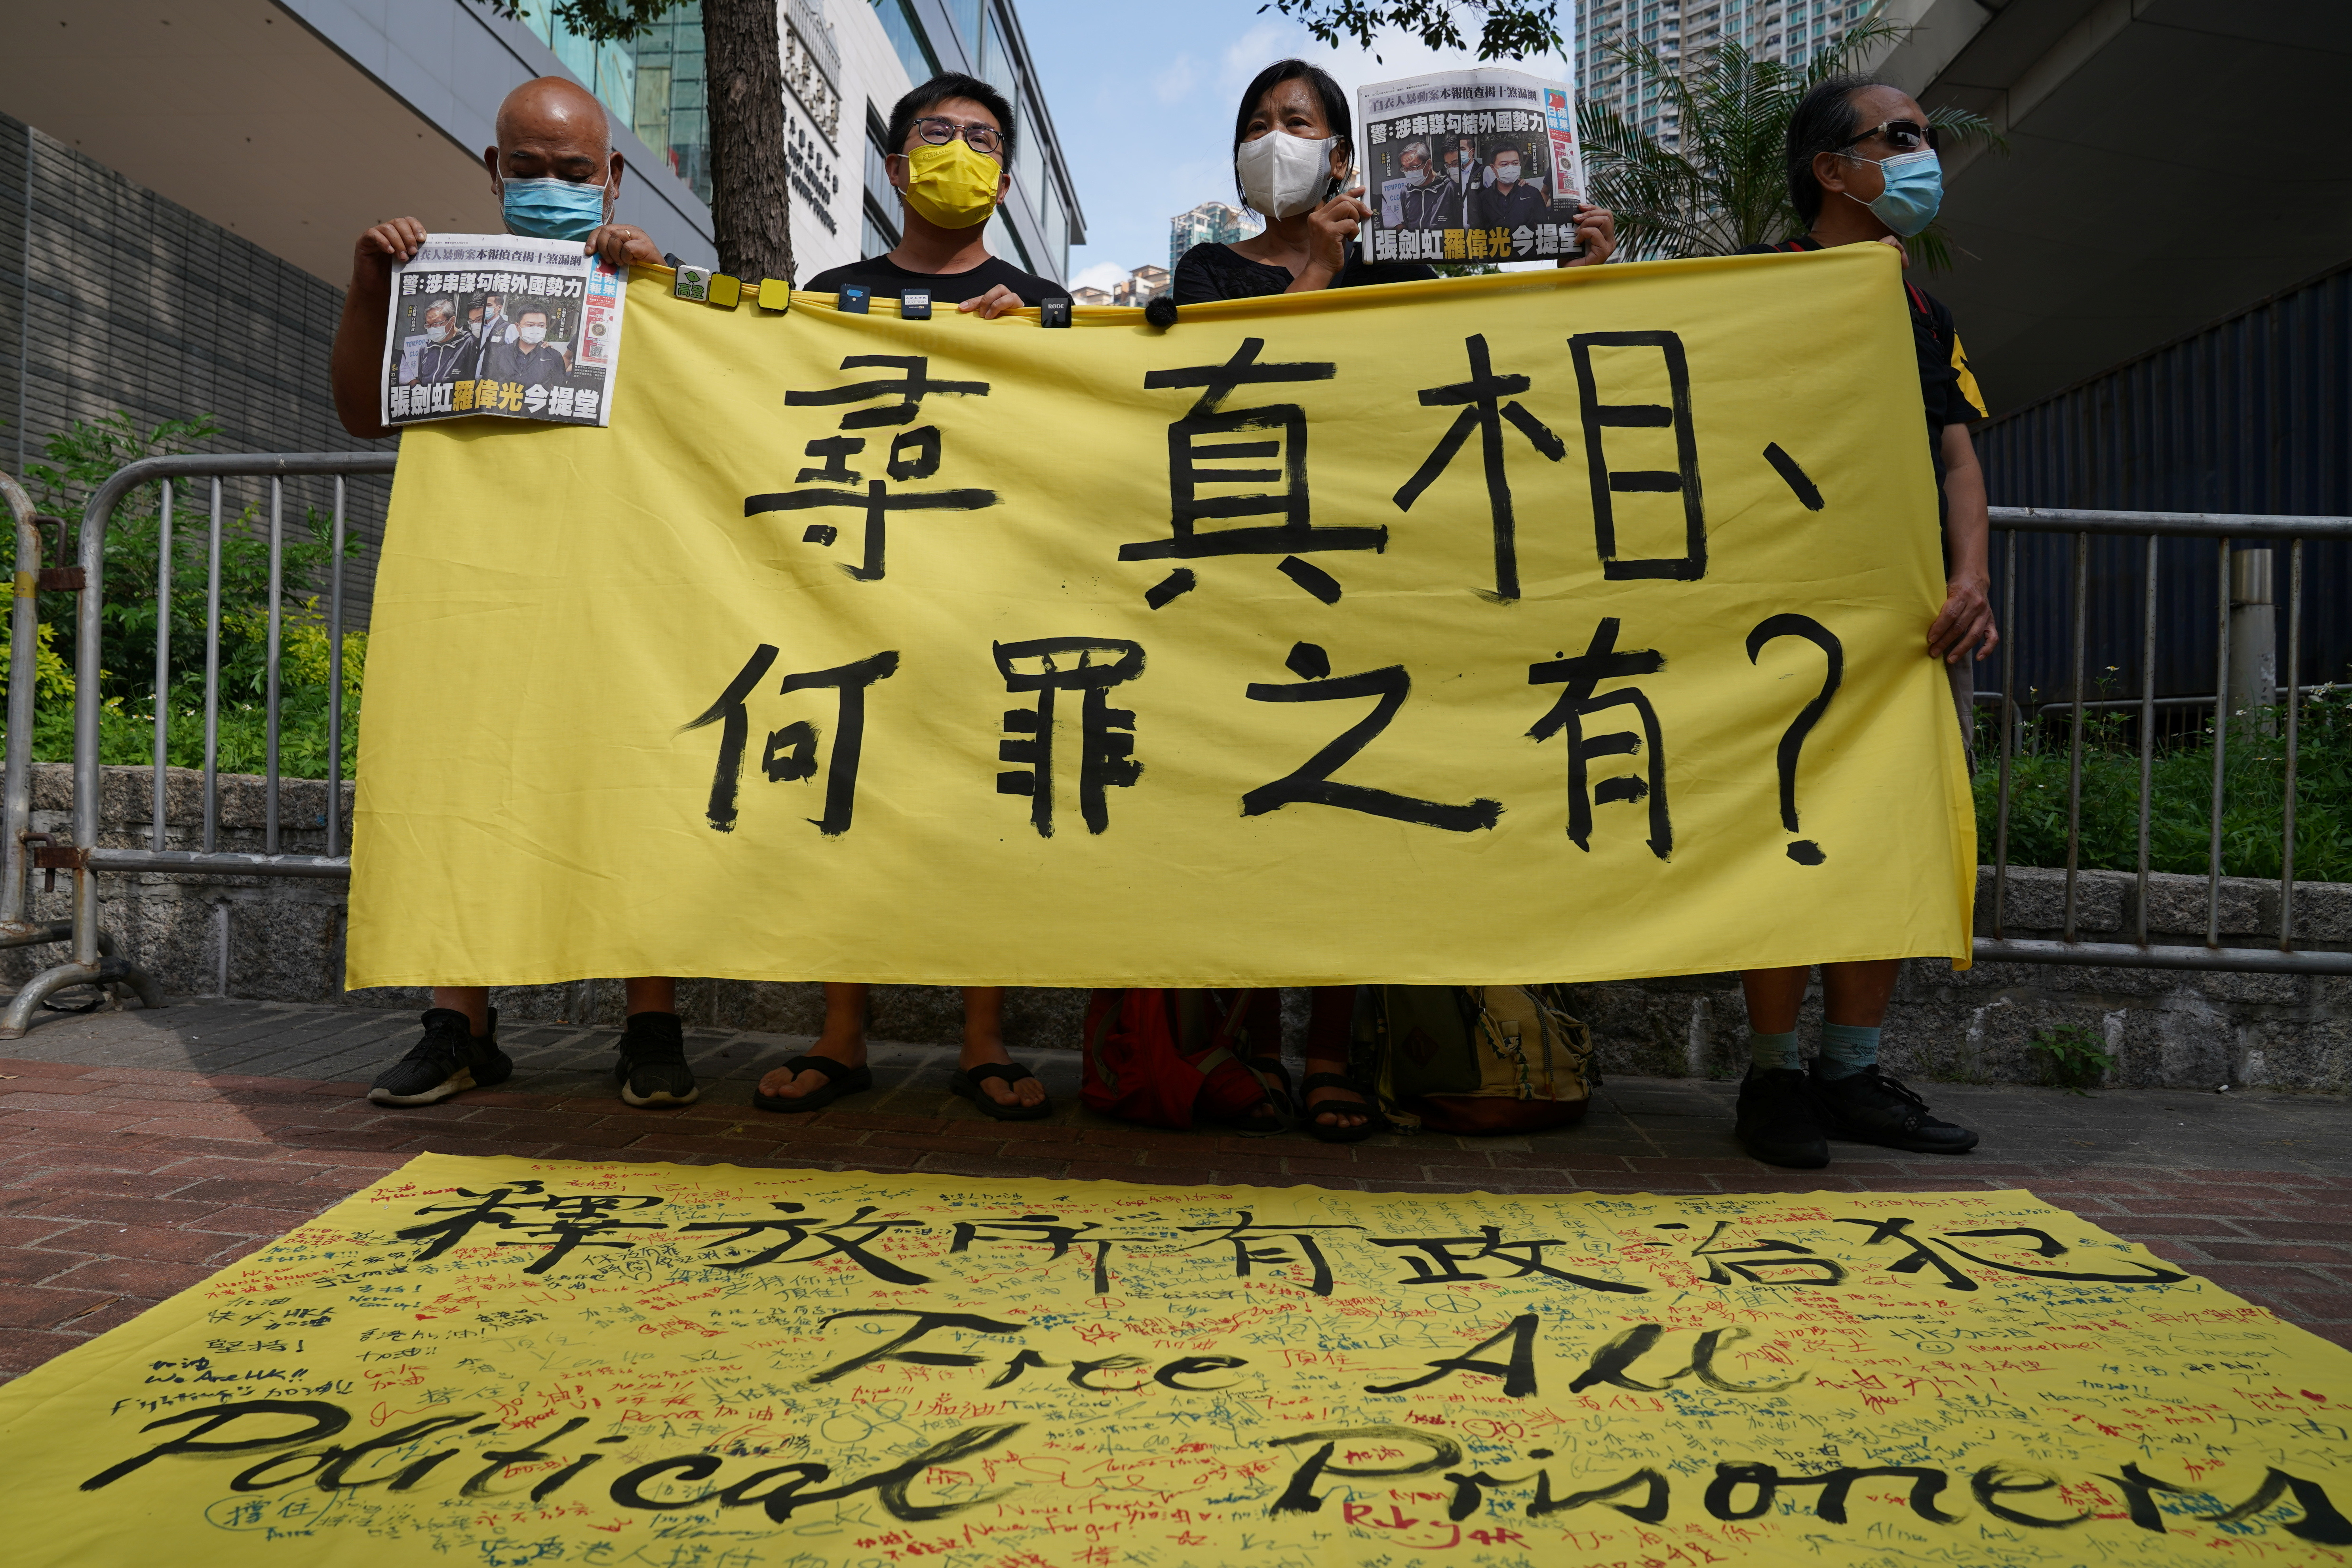 Supporters hold a copies of Apple Daily newspaper and a banner during a court hearing outside West Magistrates' Courts, after police charge two executives of the pro-democracy Apple Daily newspaper over the national security law, in Hong Kong, China, June 19, 2021. REUTERS/Lam Yik